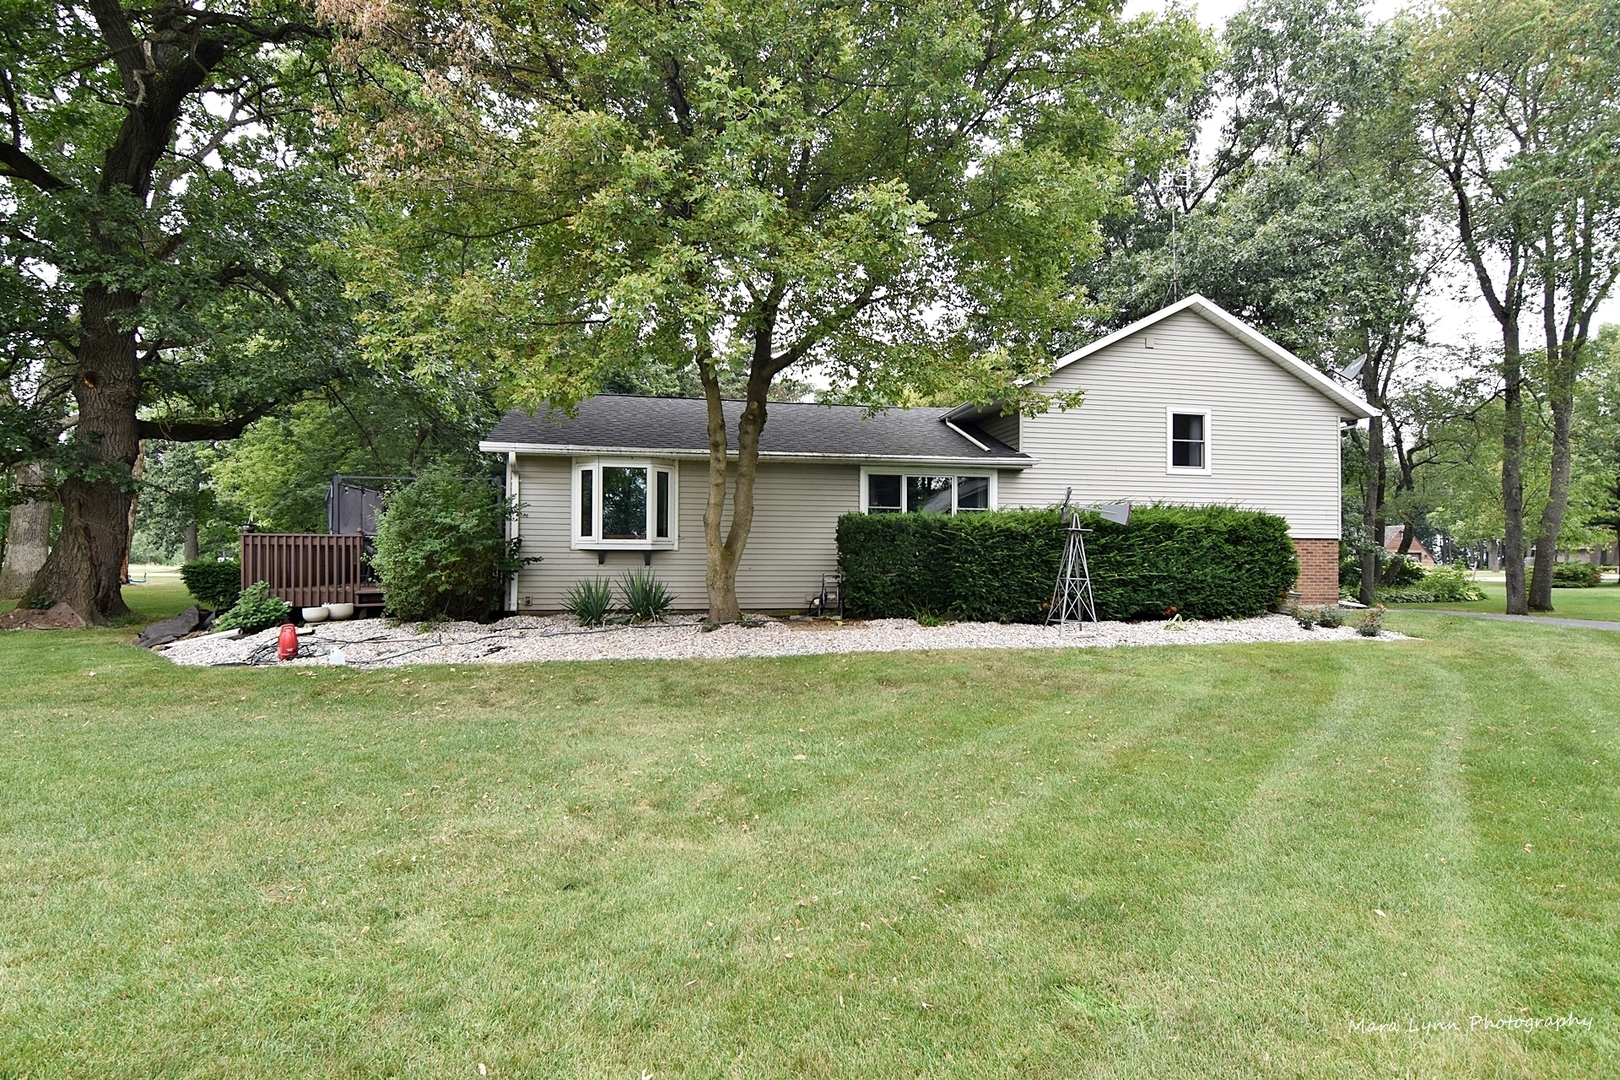 2N323 Landrose, Maple Park, Illinois, 60151